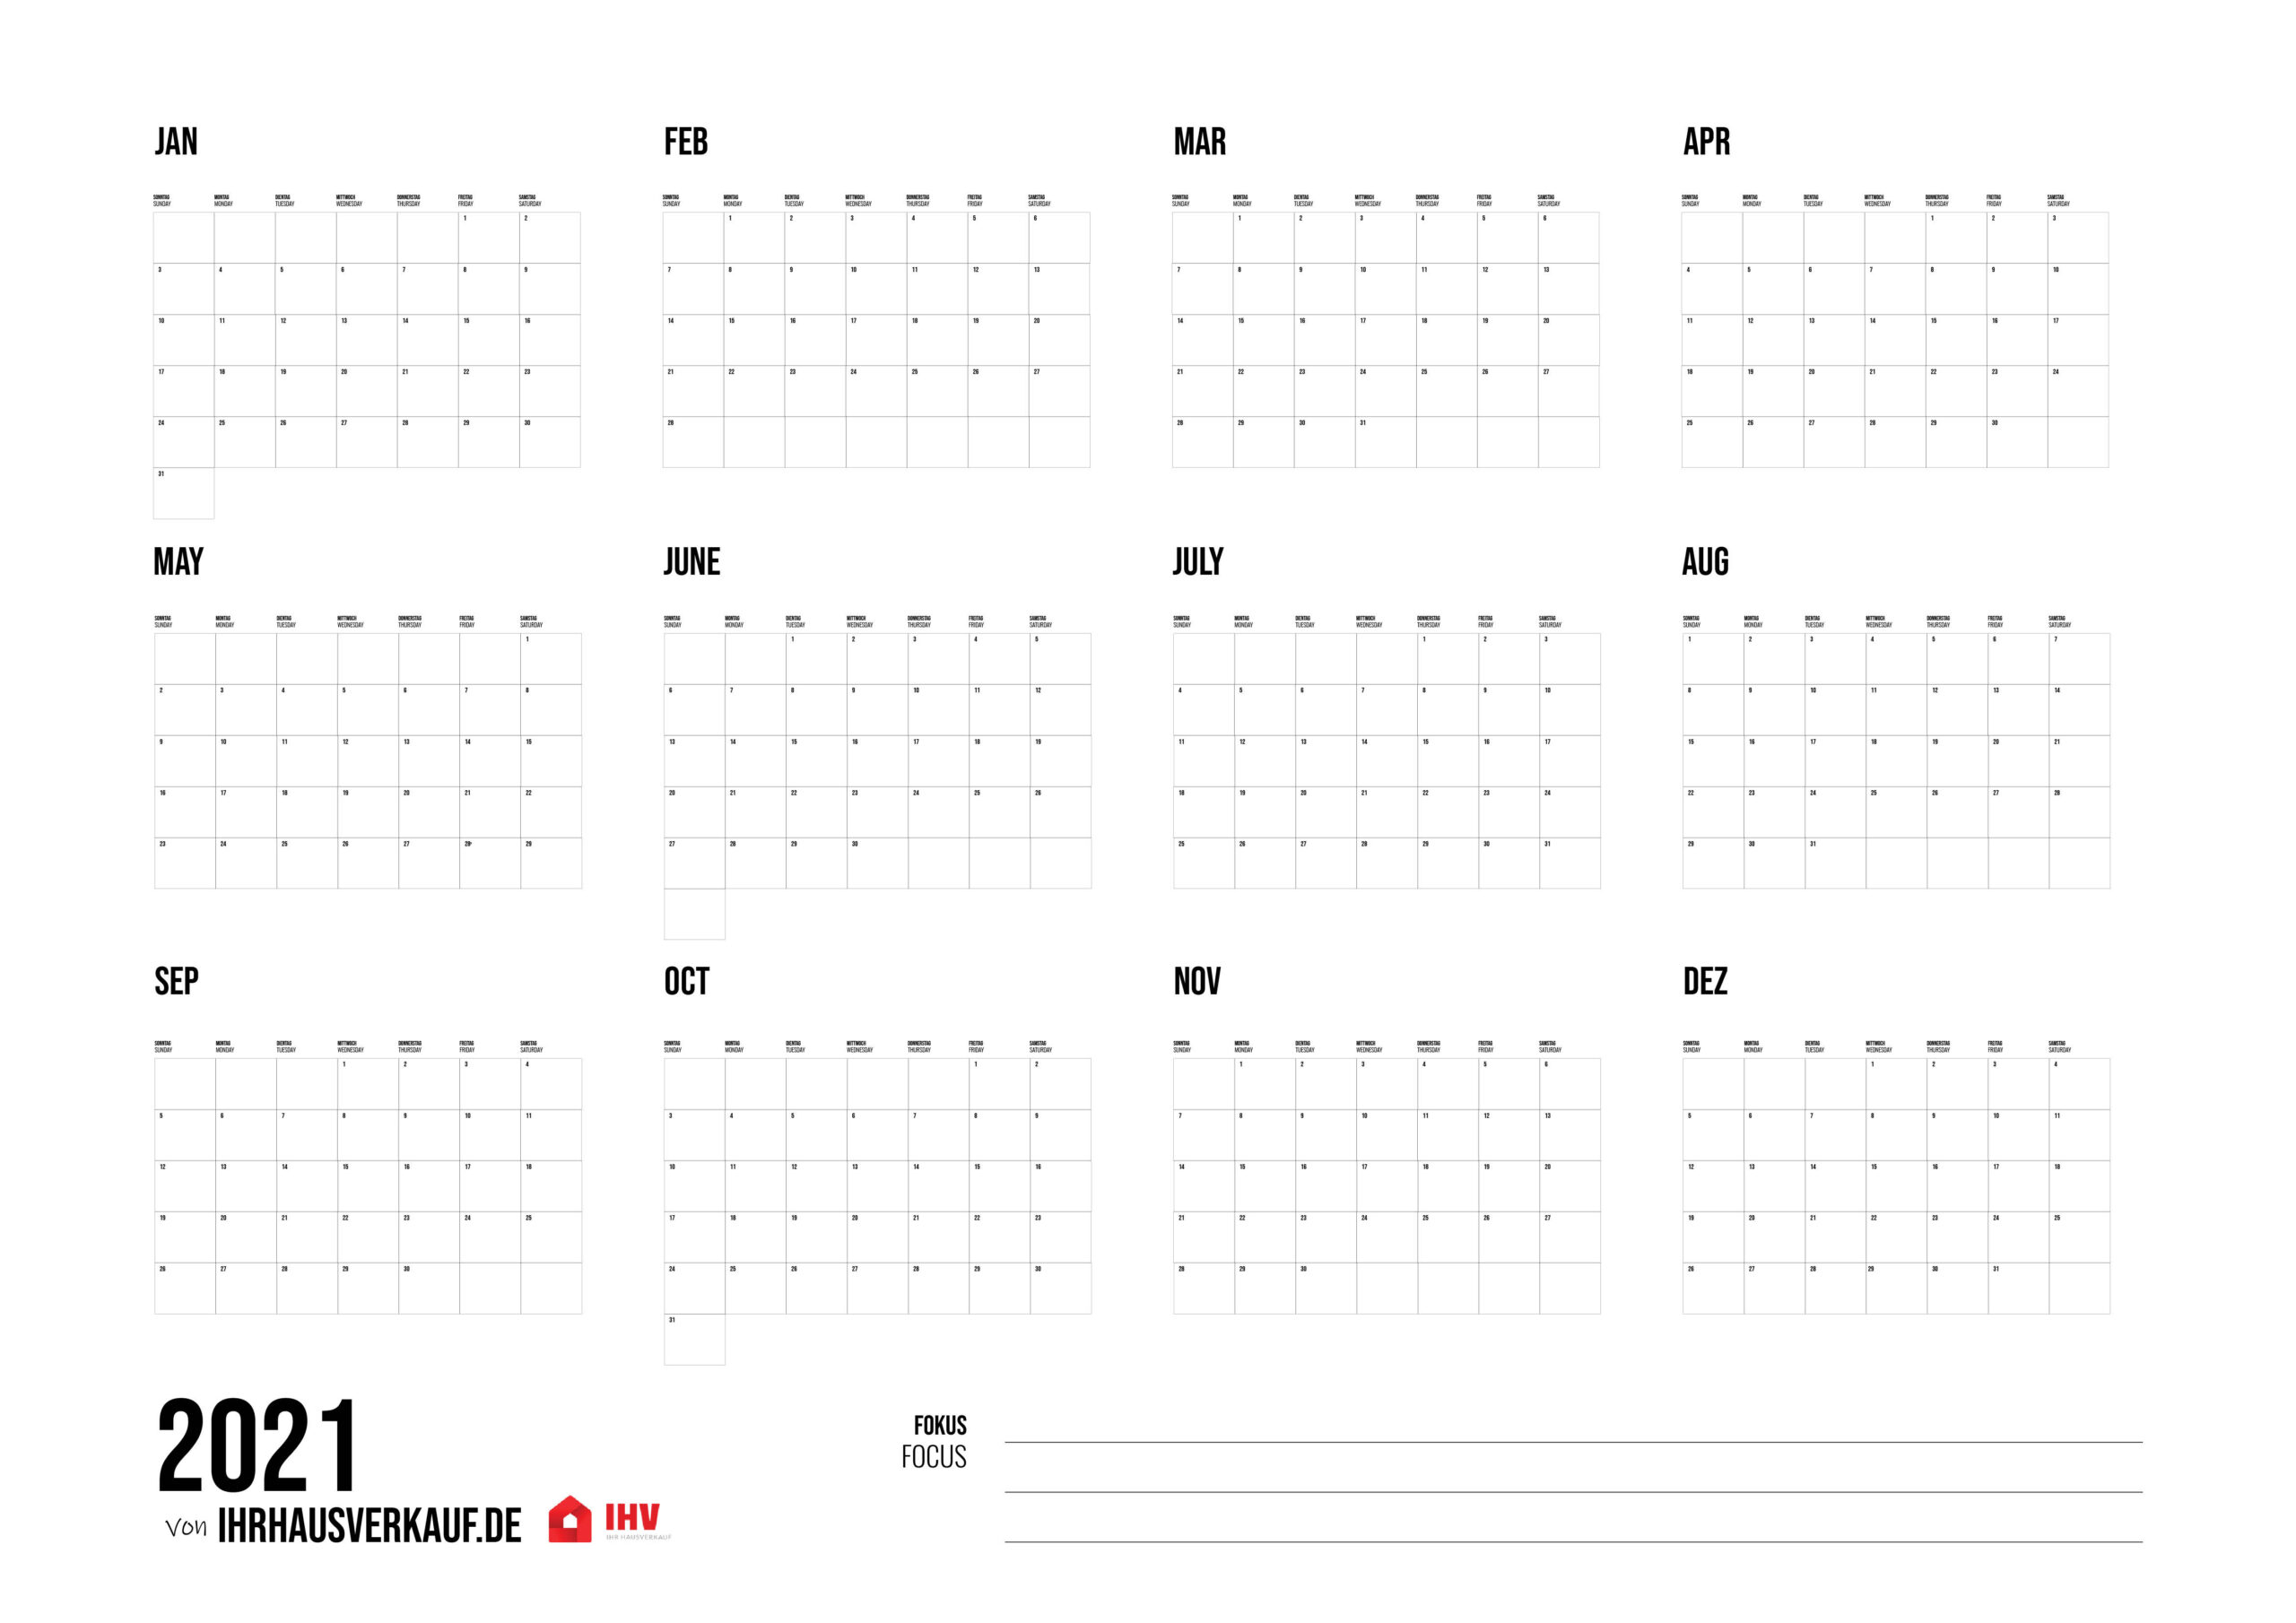 Calendar 2021 For Printing: All Months And Weeks As Pdf (12+